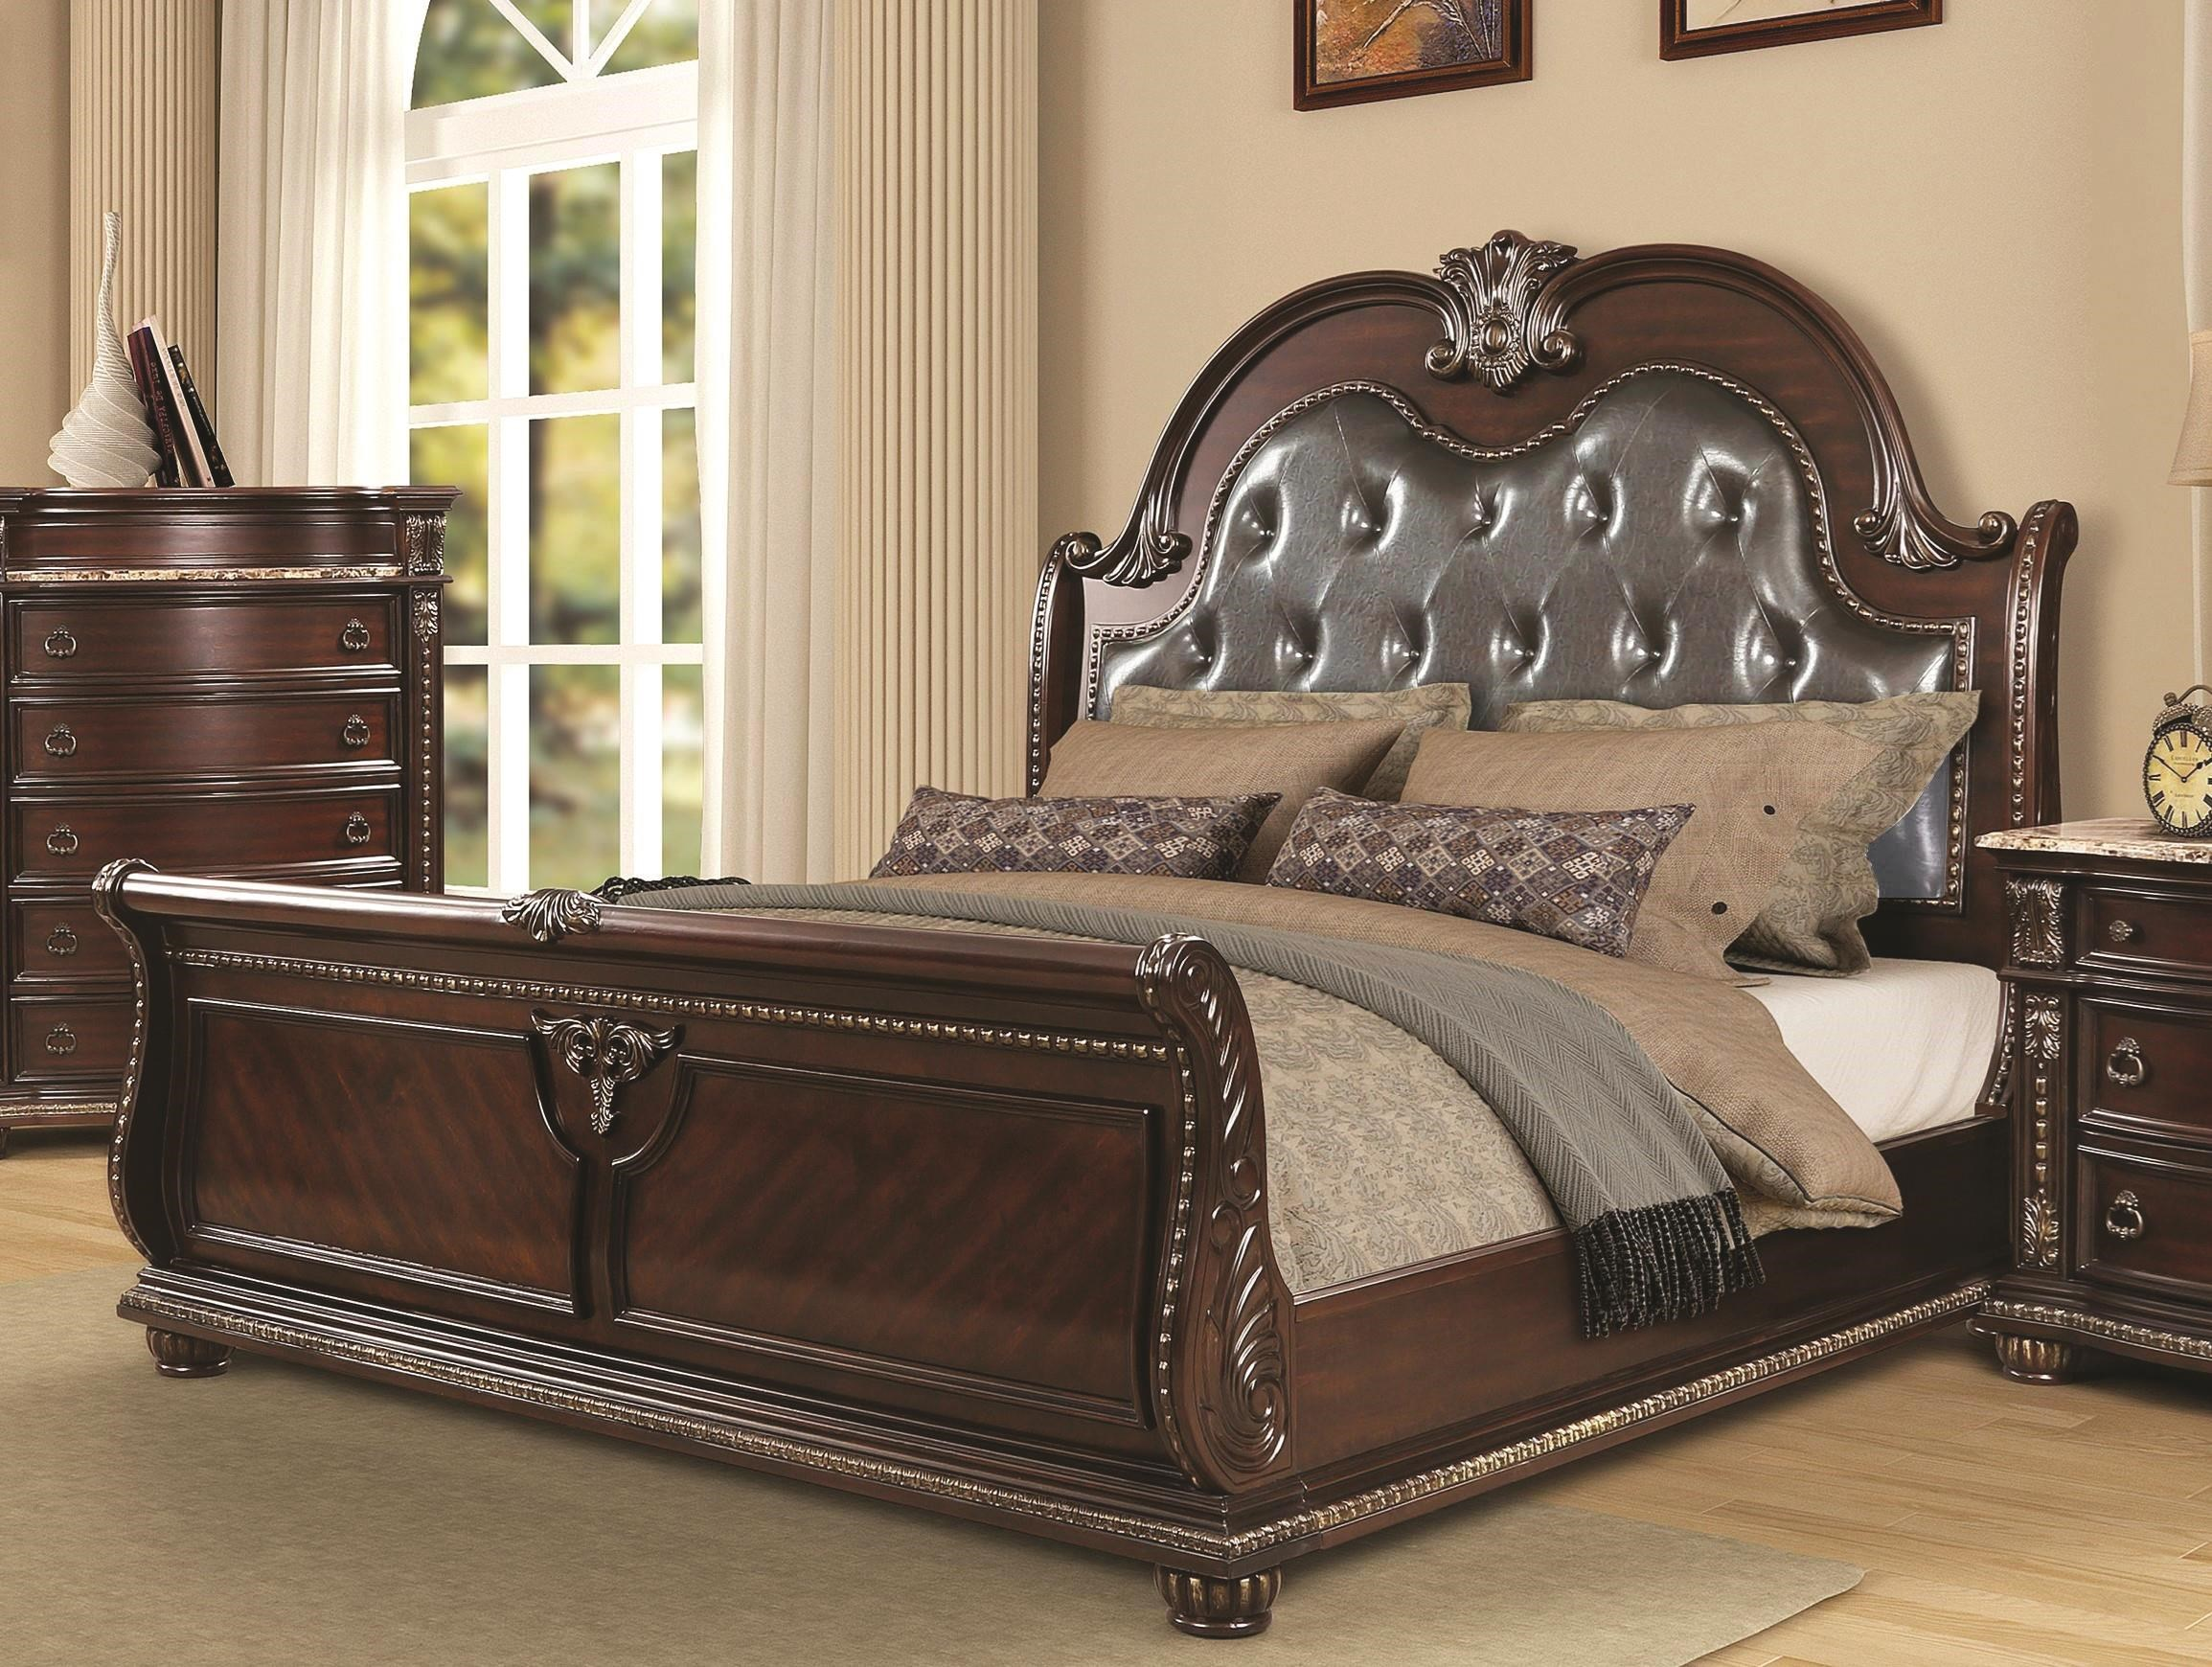 3600 BEAU Queen Sleigh Bed by Oasis Home & Decor at Furniture Fair - North Carolina